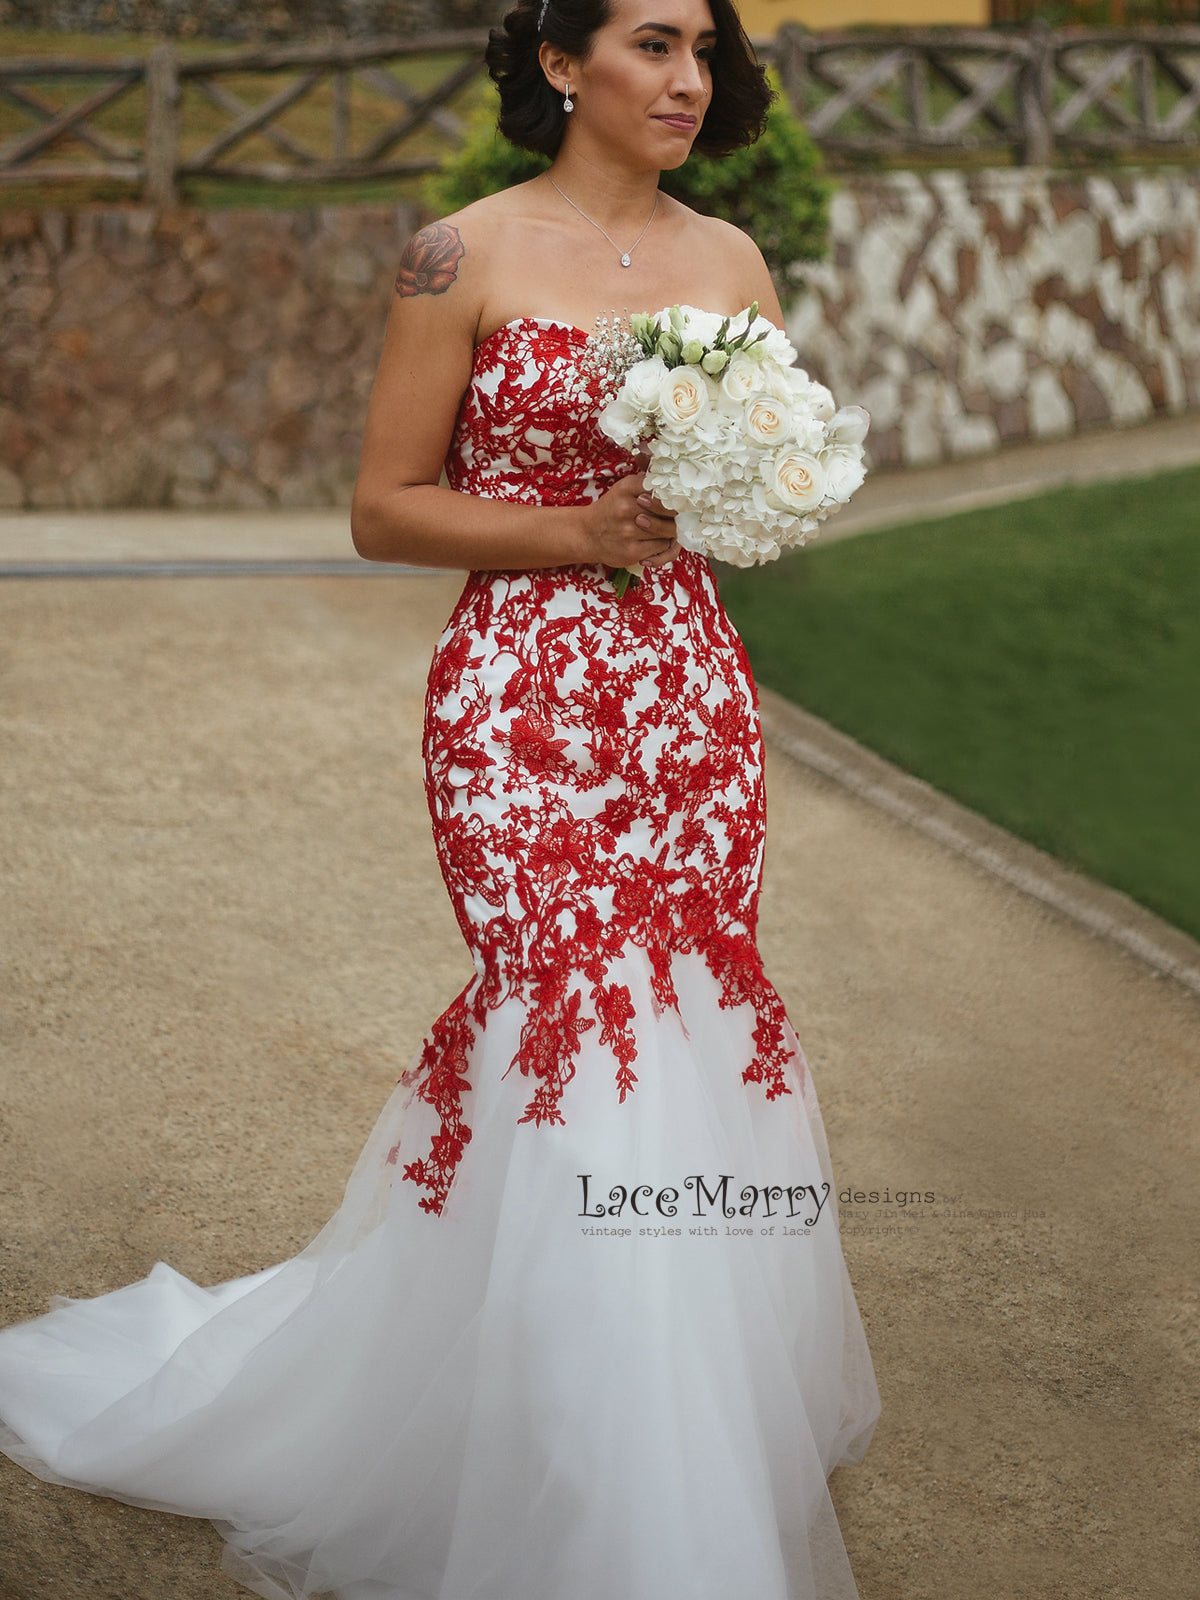 Red Lace Wedding Dress With Ivory Tulle Strapless Sweetheart Neckline Lacemarry